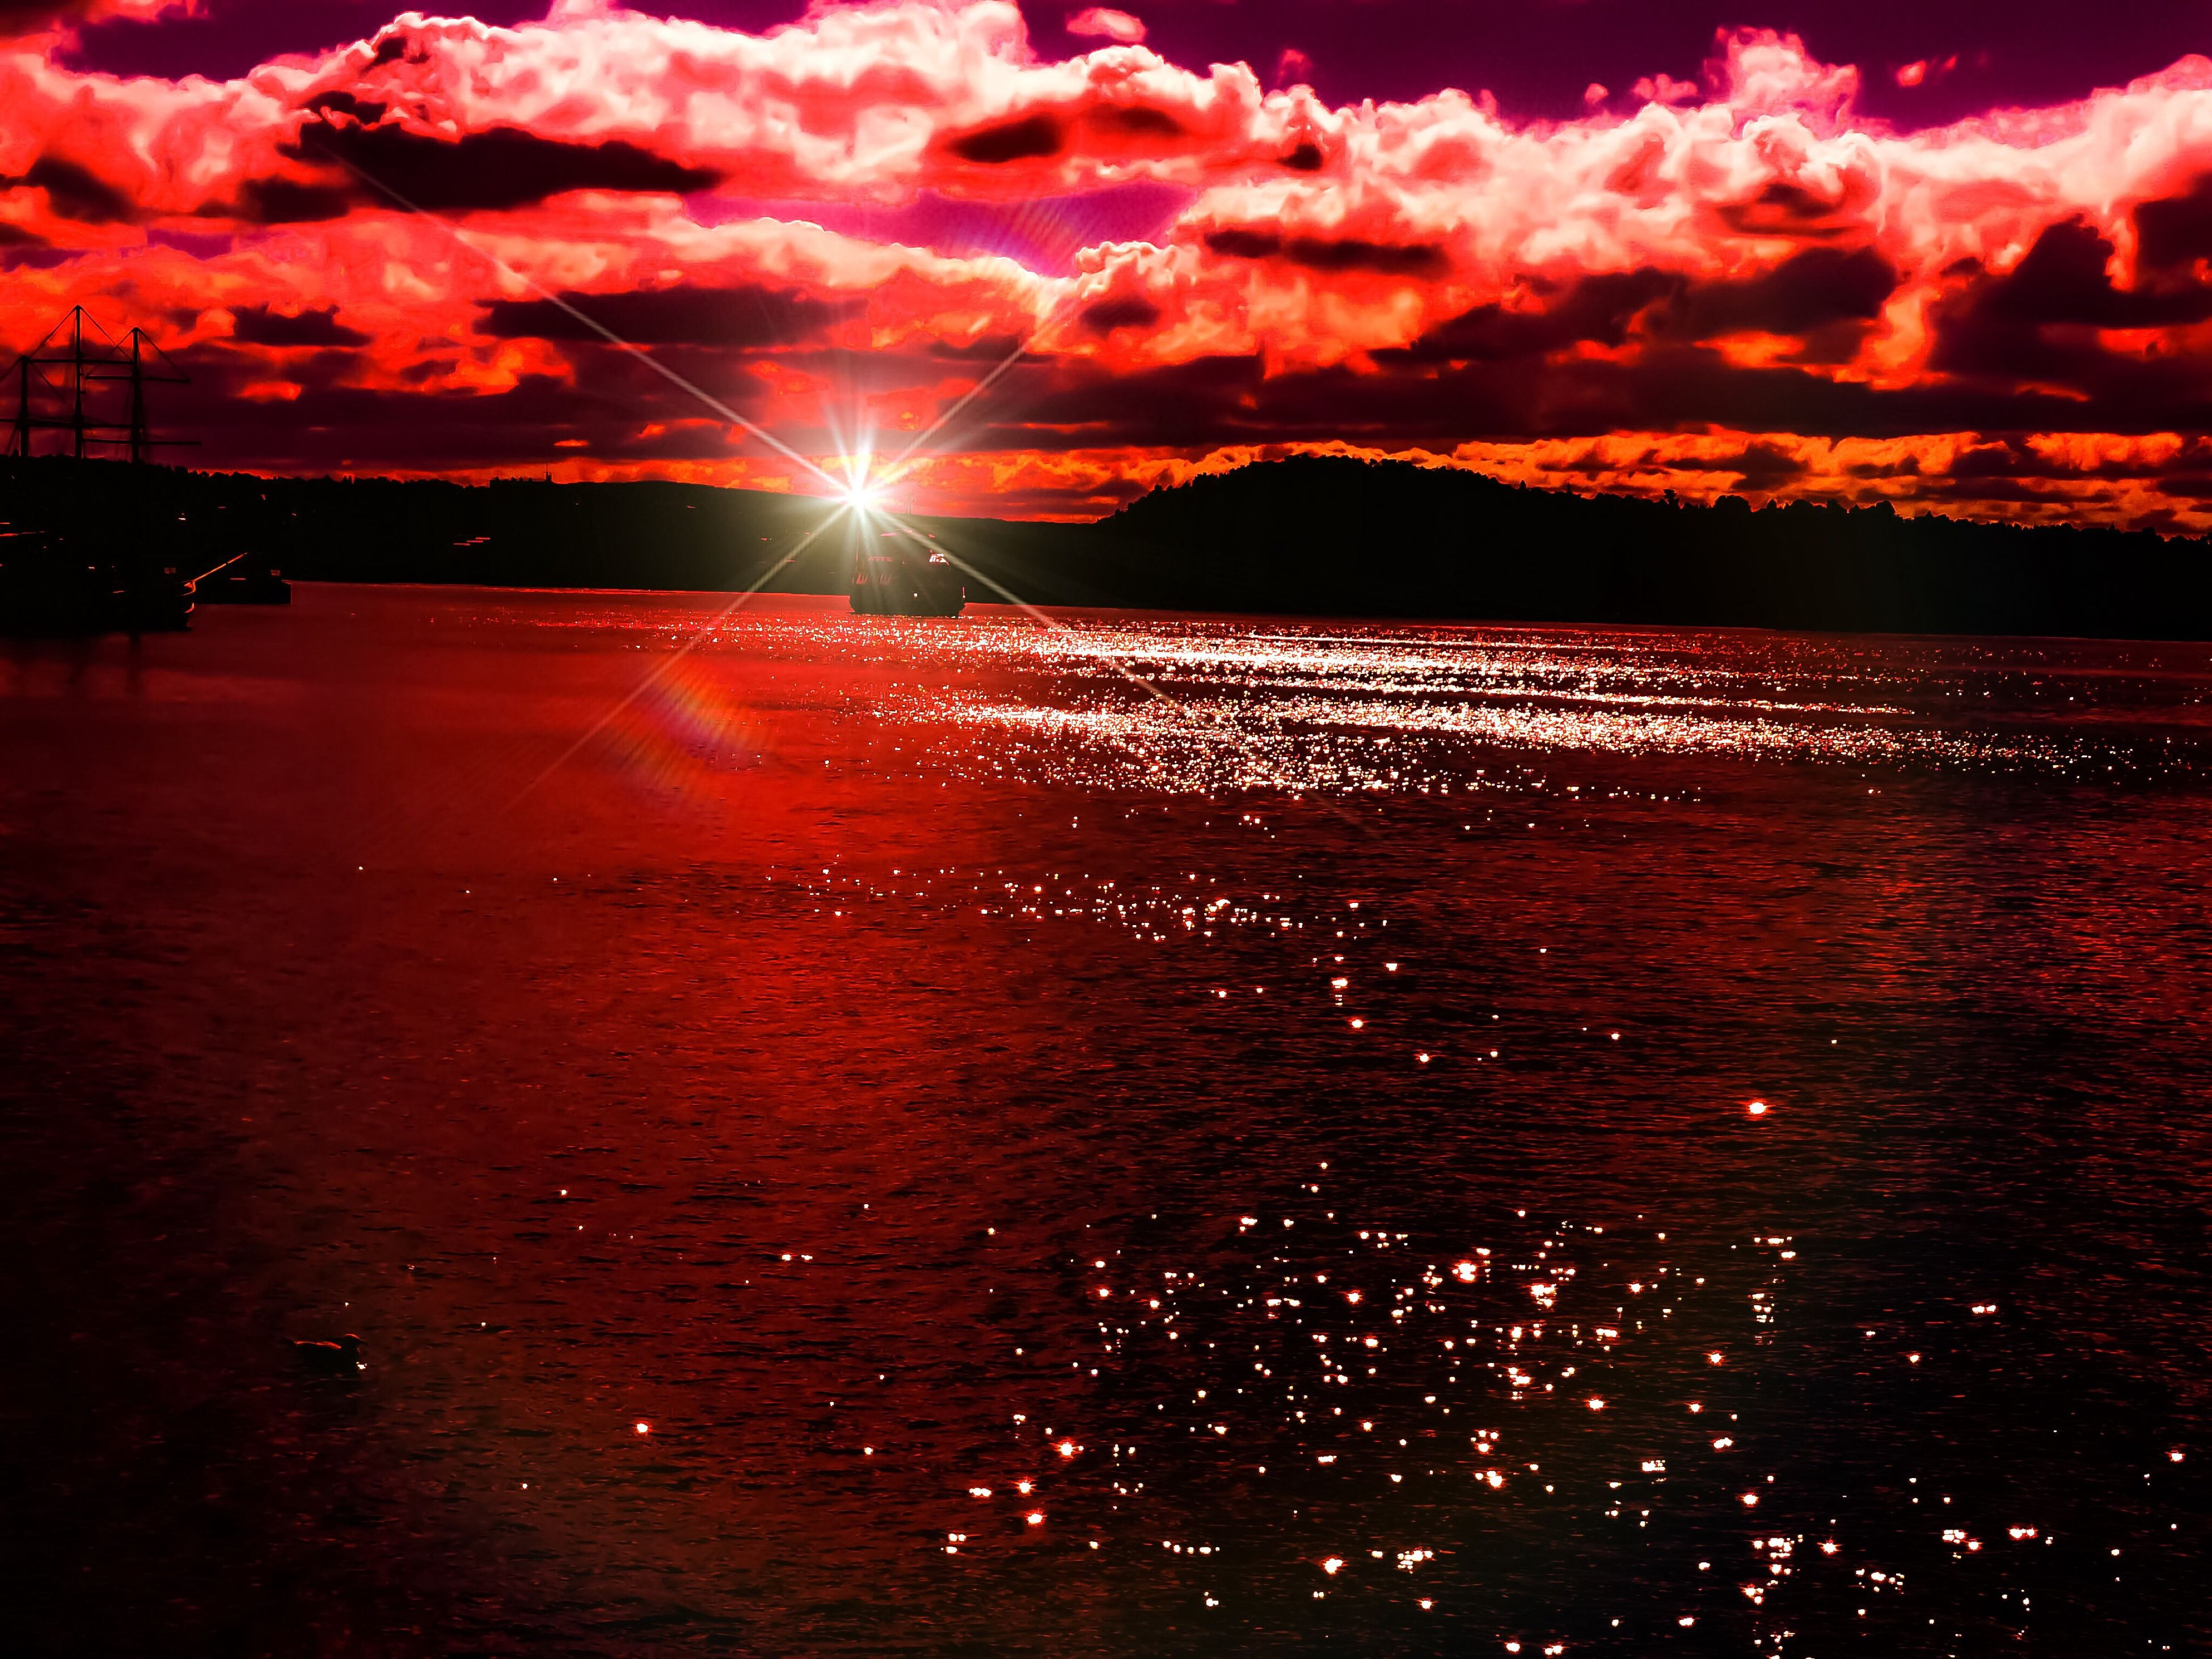 sunset, red, outdoors, no people, beauty in nature, water, dramatic sky, sky, nature, illuminated, shiny, sunbeam